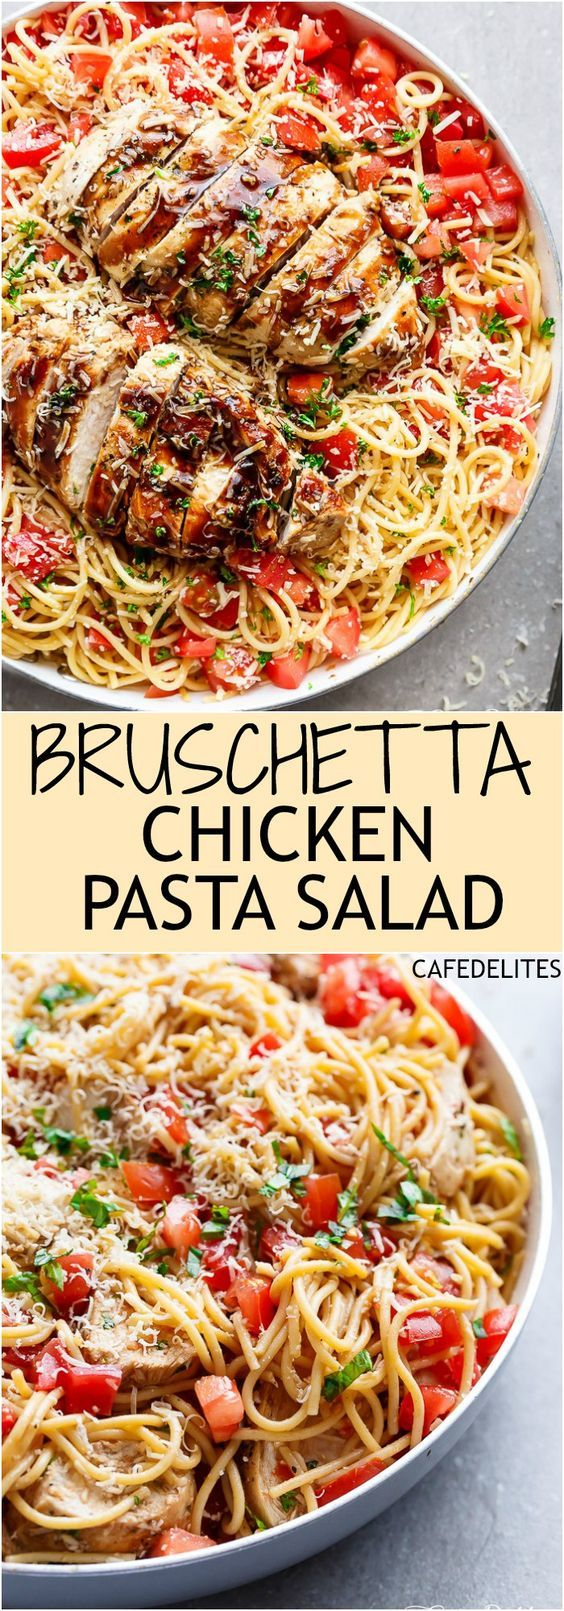 Bruschetta Chicken Pasta Salad is a must make for any occasion in minutes! Filled with Italian seasoned grilled chicken garlic and parmesan cheese!